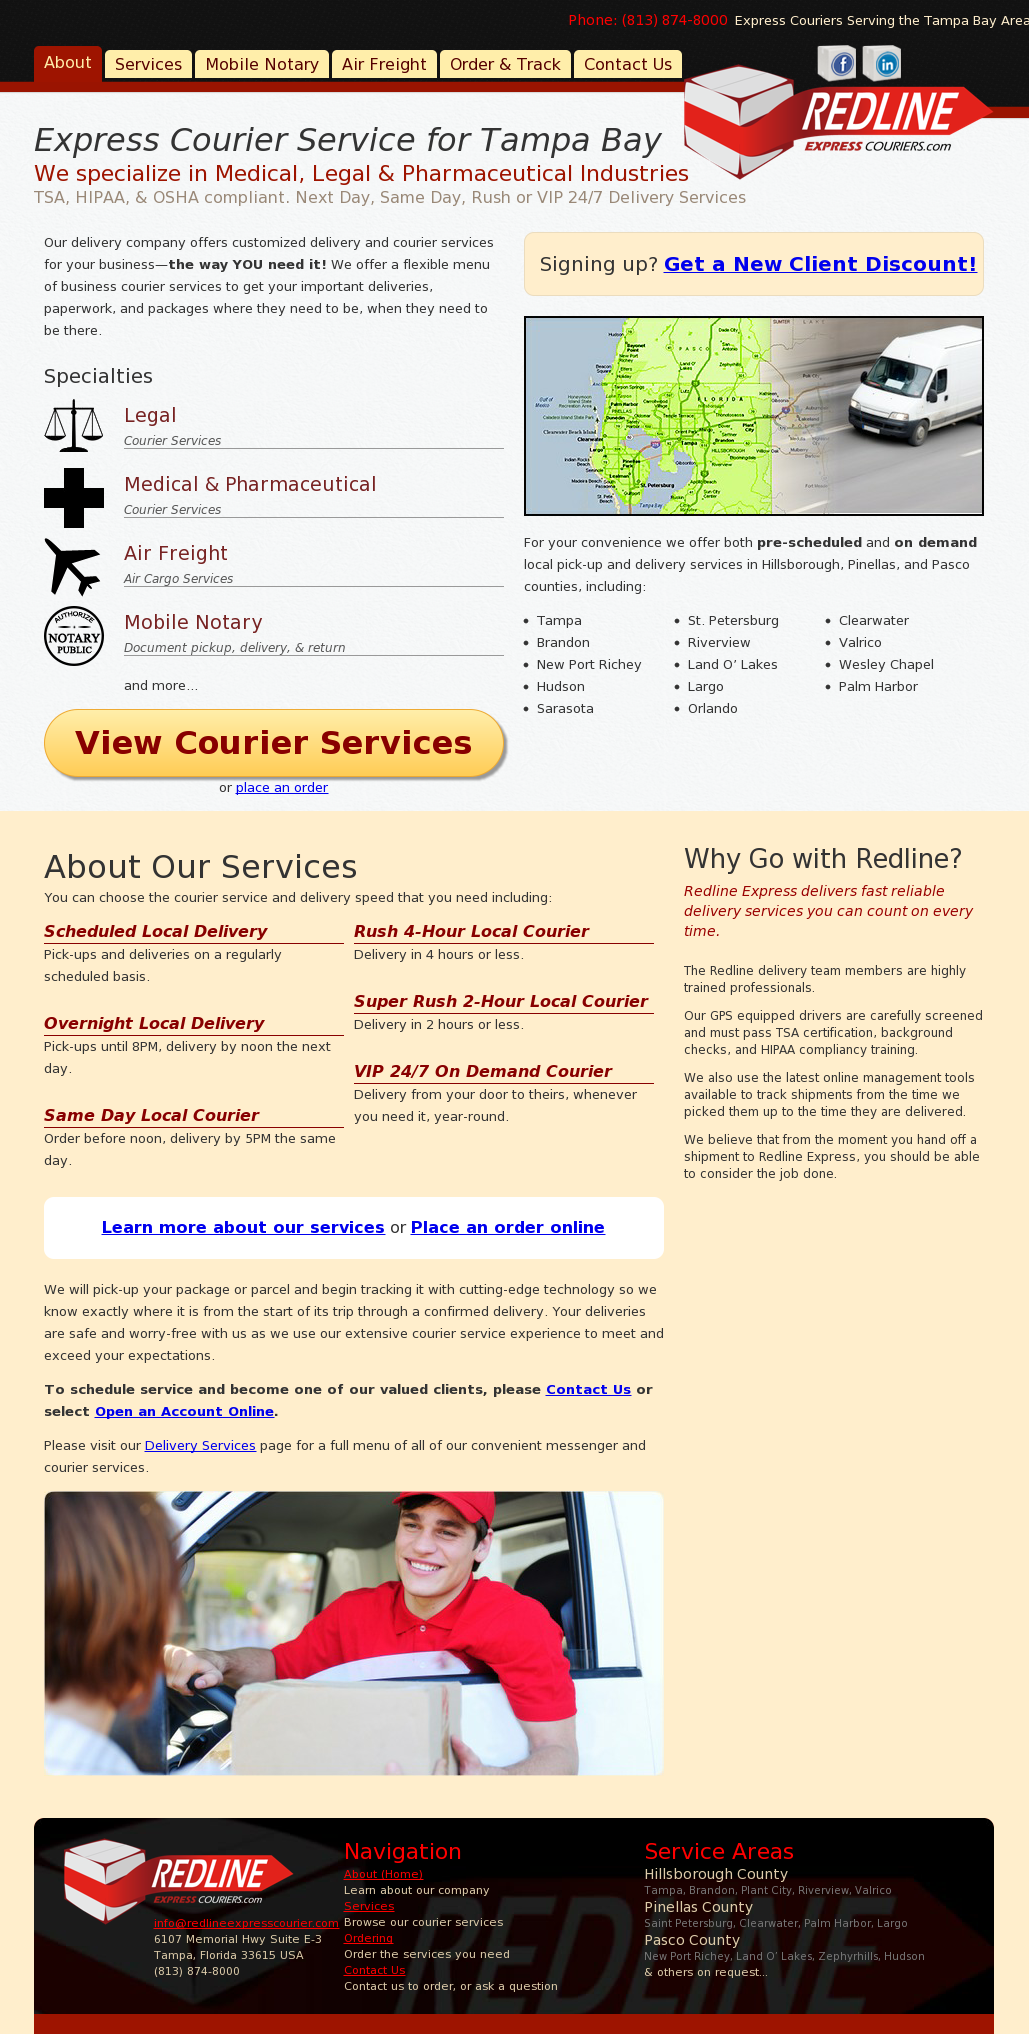 Redline Express Courier Competitors, Revenue and Employees - Owler